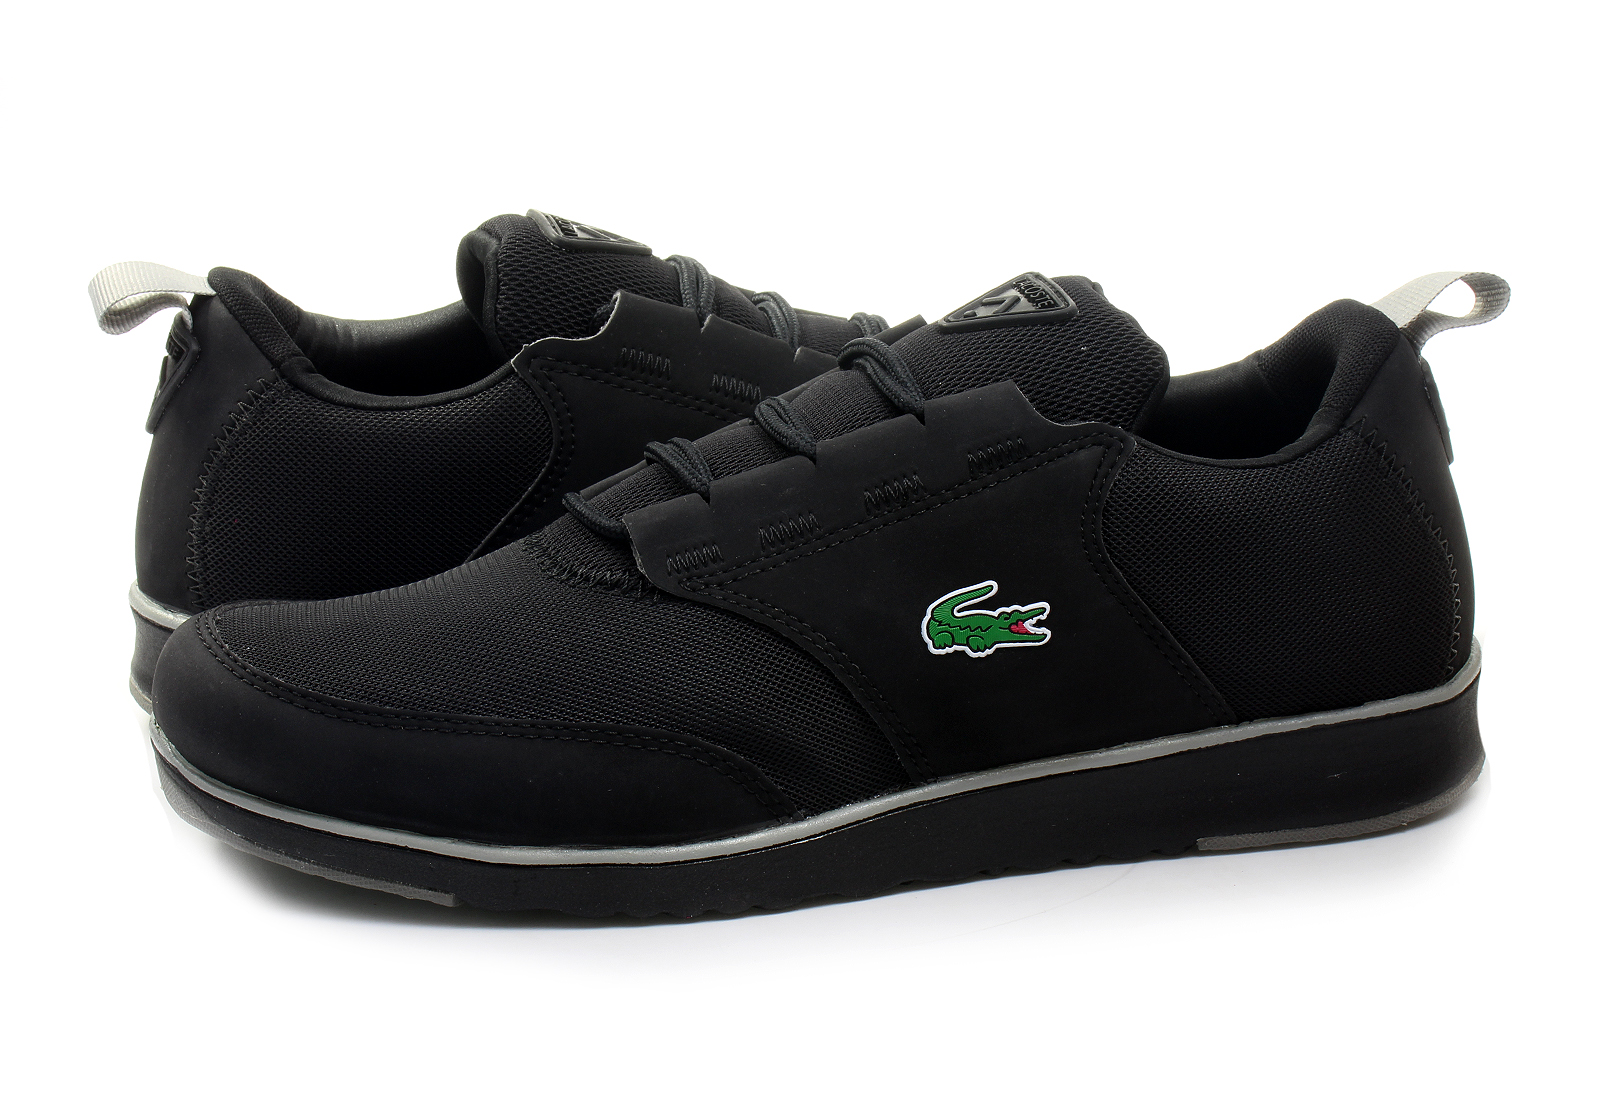 Lacoste L.ight 2.0 | shoes in 2019 | Lacoste shoes, Lacoste